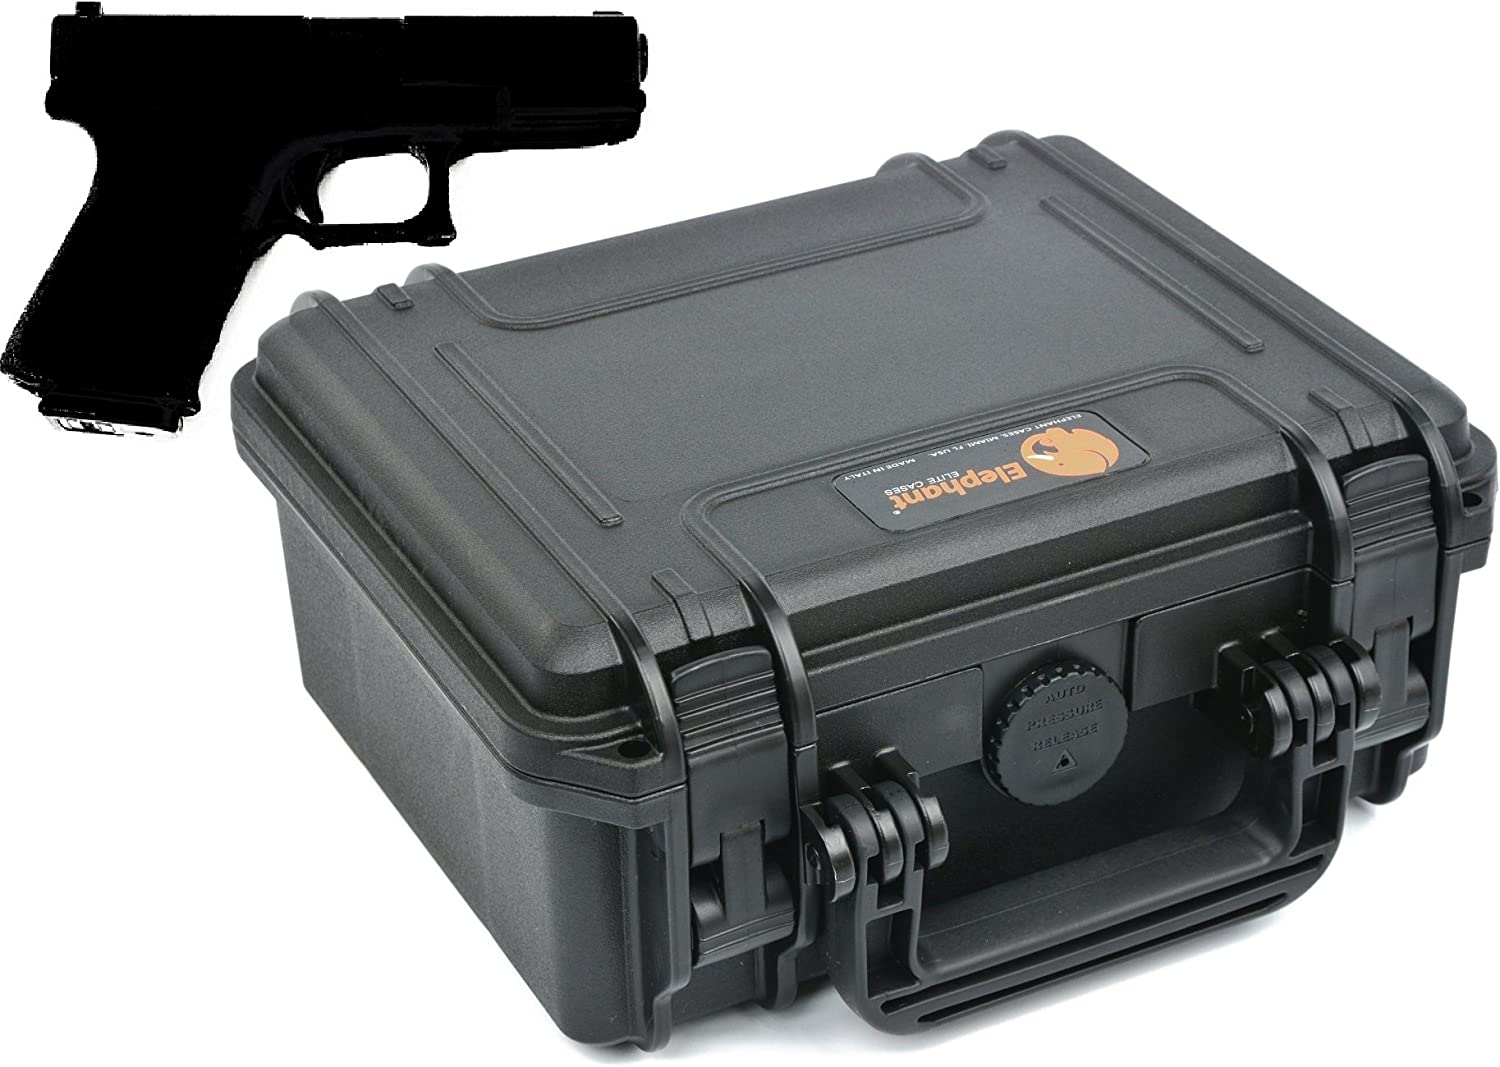 Elephant Elite EL0904G Handgun Pistol and Revolver Hard Case for Small to Medium Gun and Magazine Great for The Shooting Range, Safe Storage or Travel Fits Glock, Sig Sauer Smith & Wesson M&p Under 8